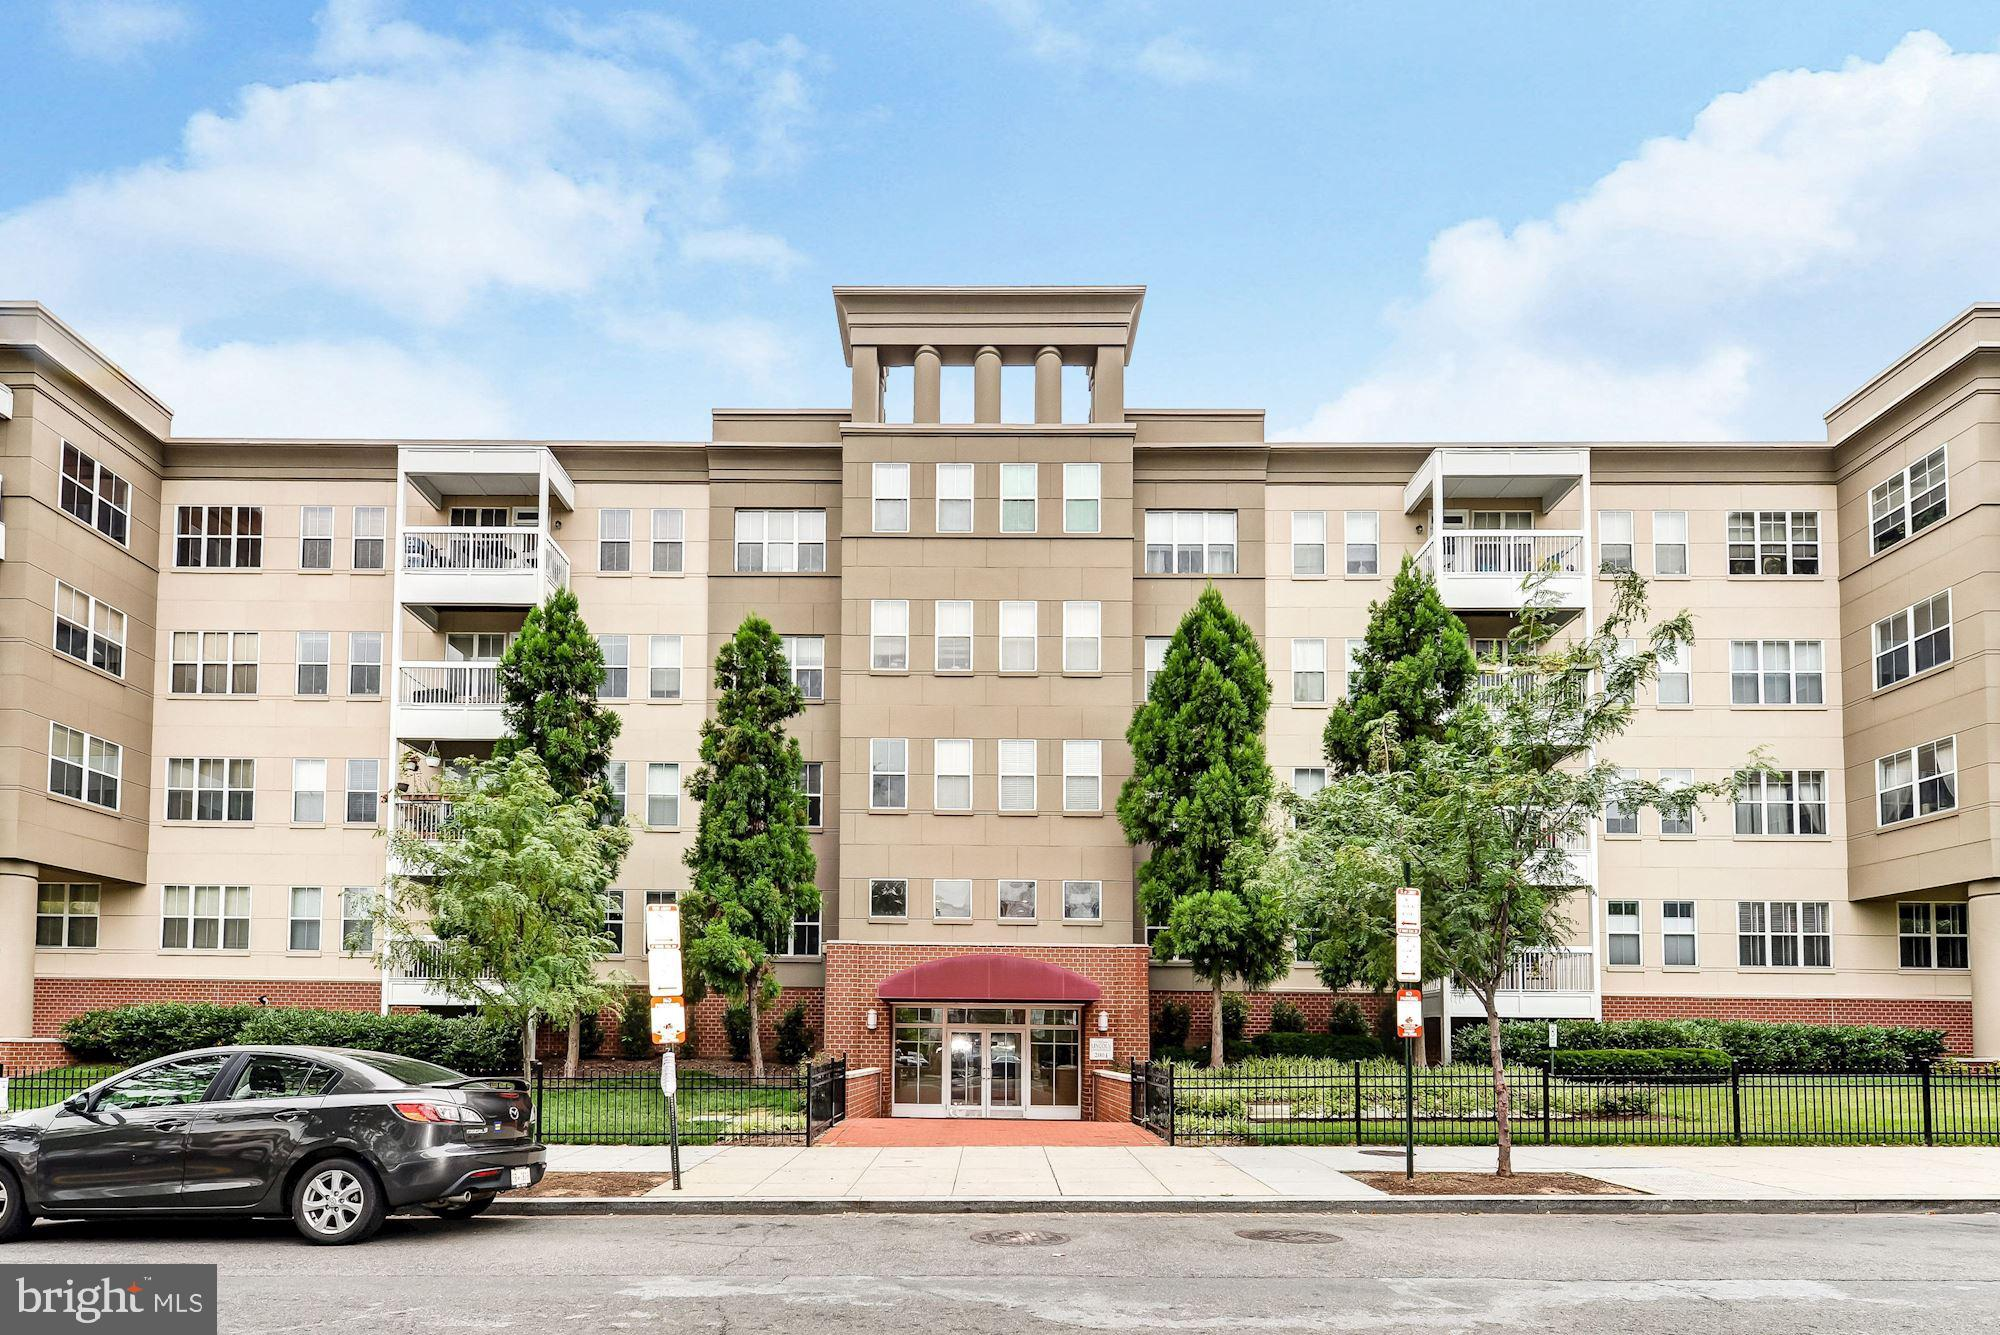 Stunning 1BR/1BA unit with southeastern exposure ft a large balcony overlooking 11th Street at The L